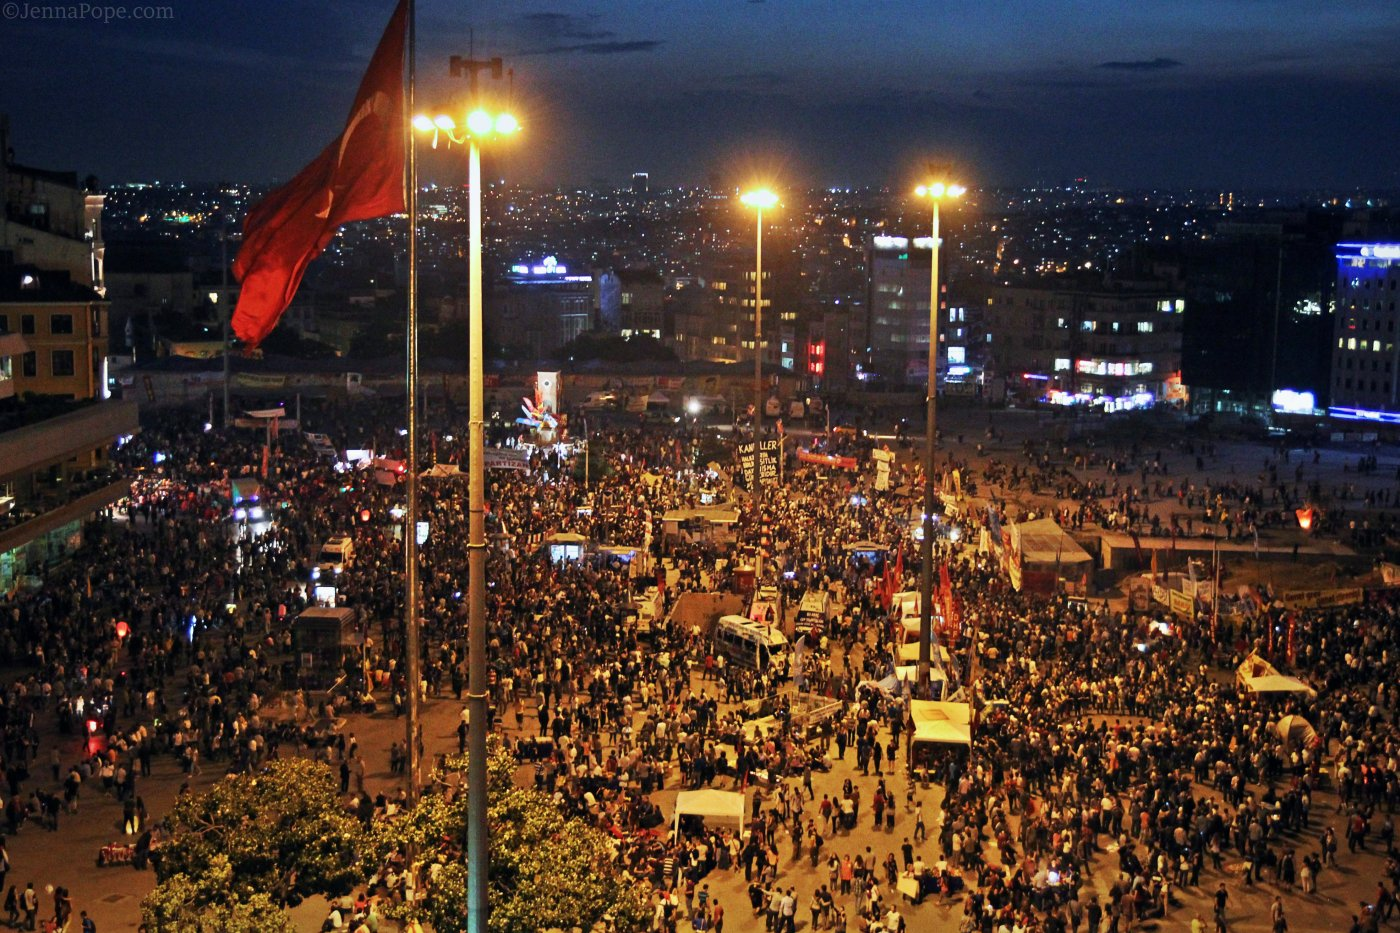 Thousands of people fill Taksim Square.